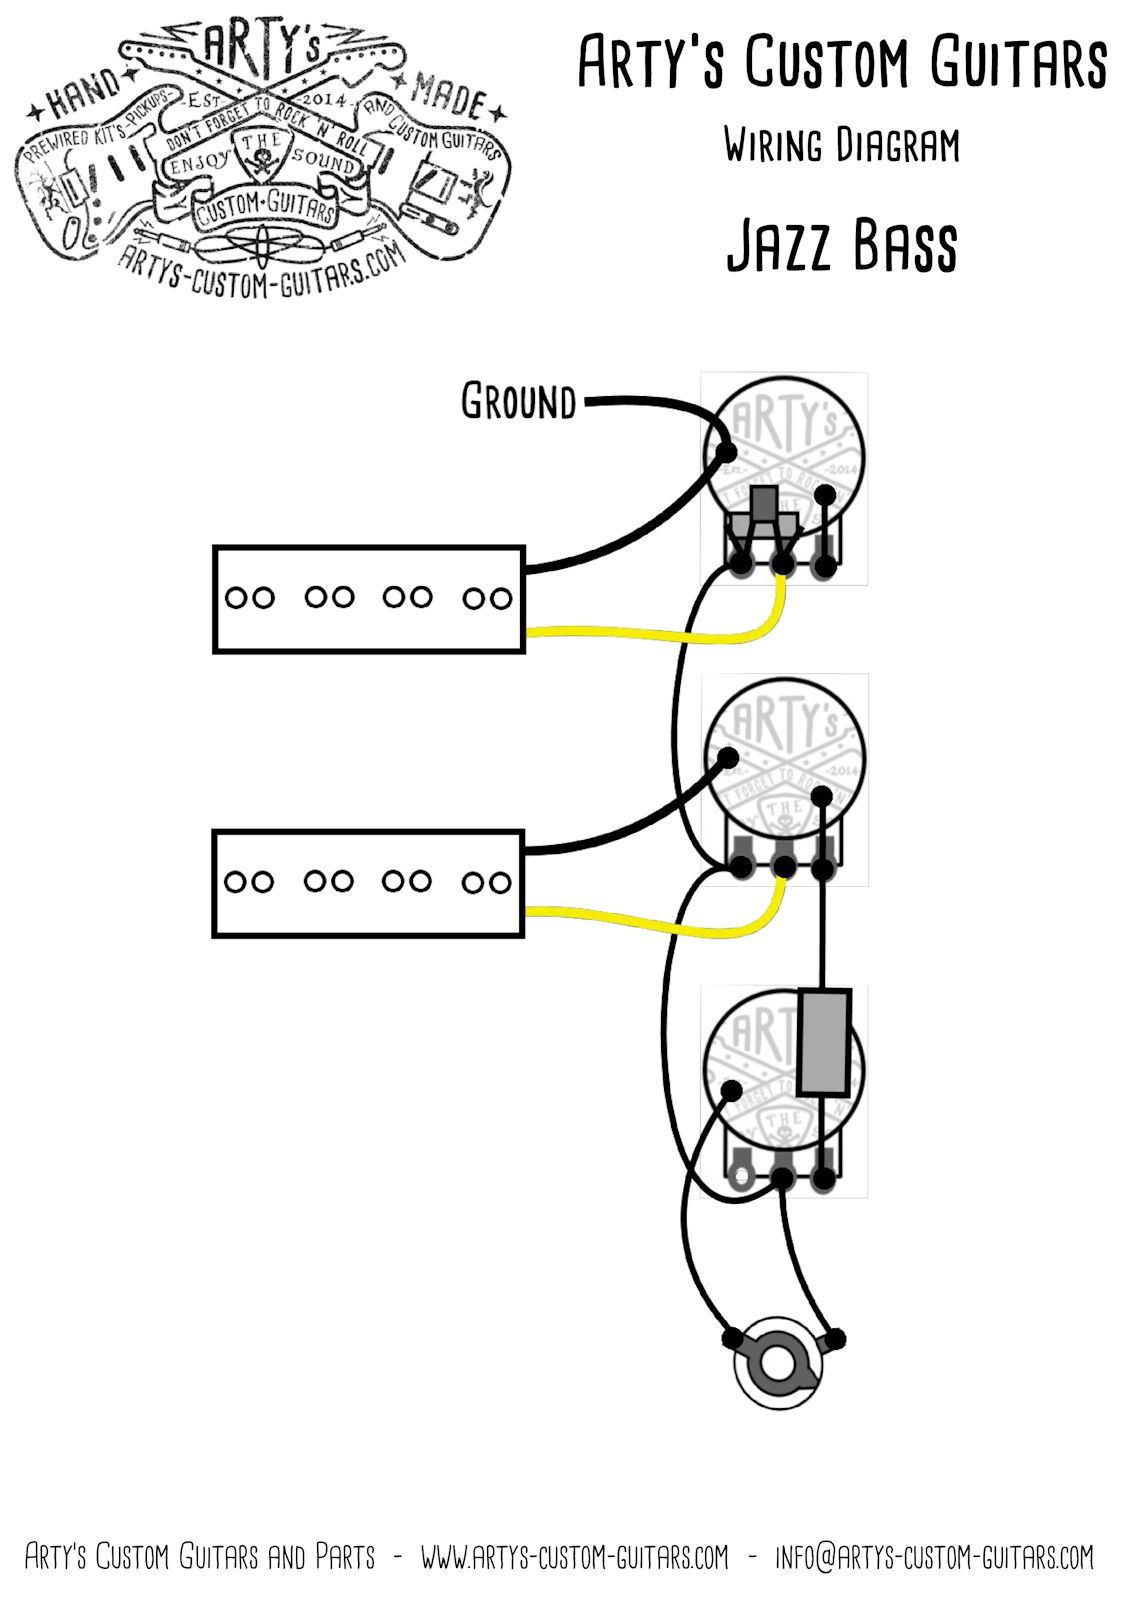 Wiring Harness Jazz Bass Balance J Bass